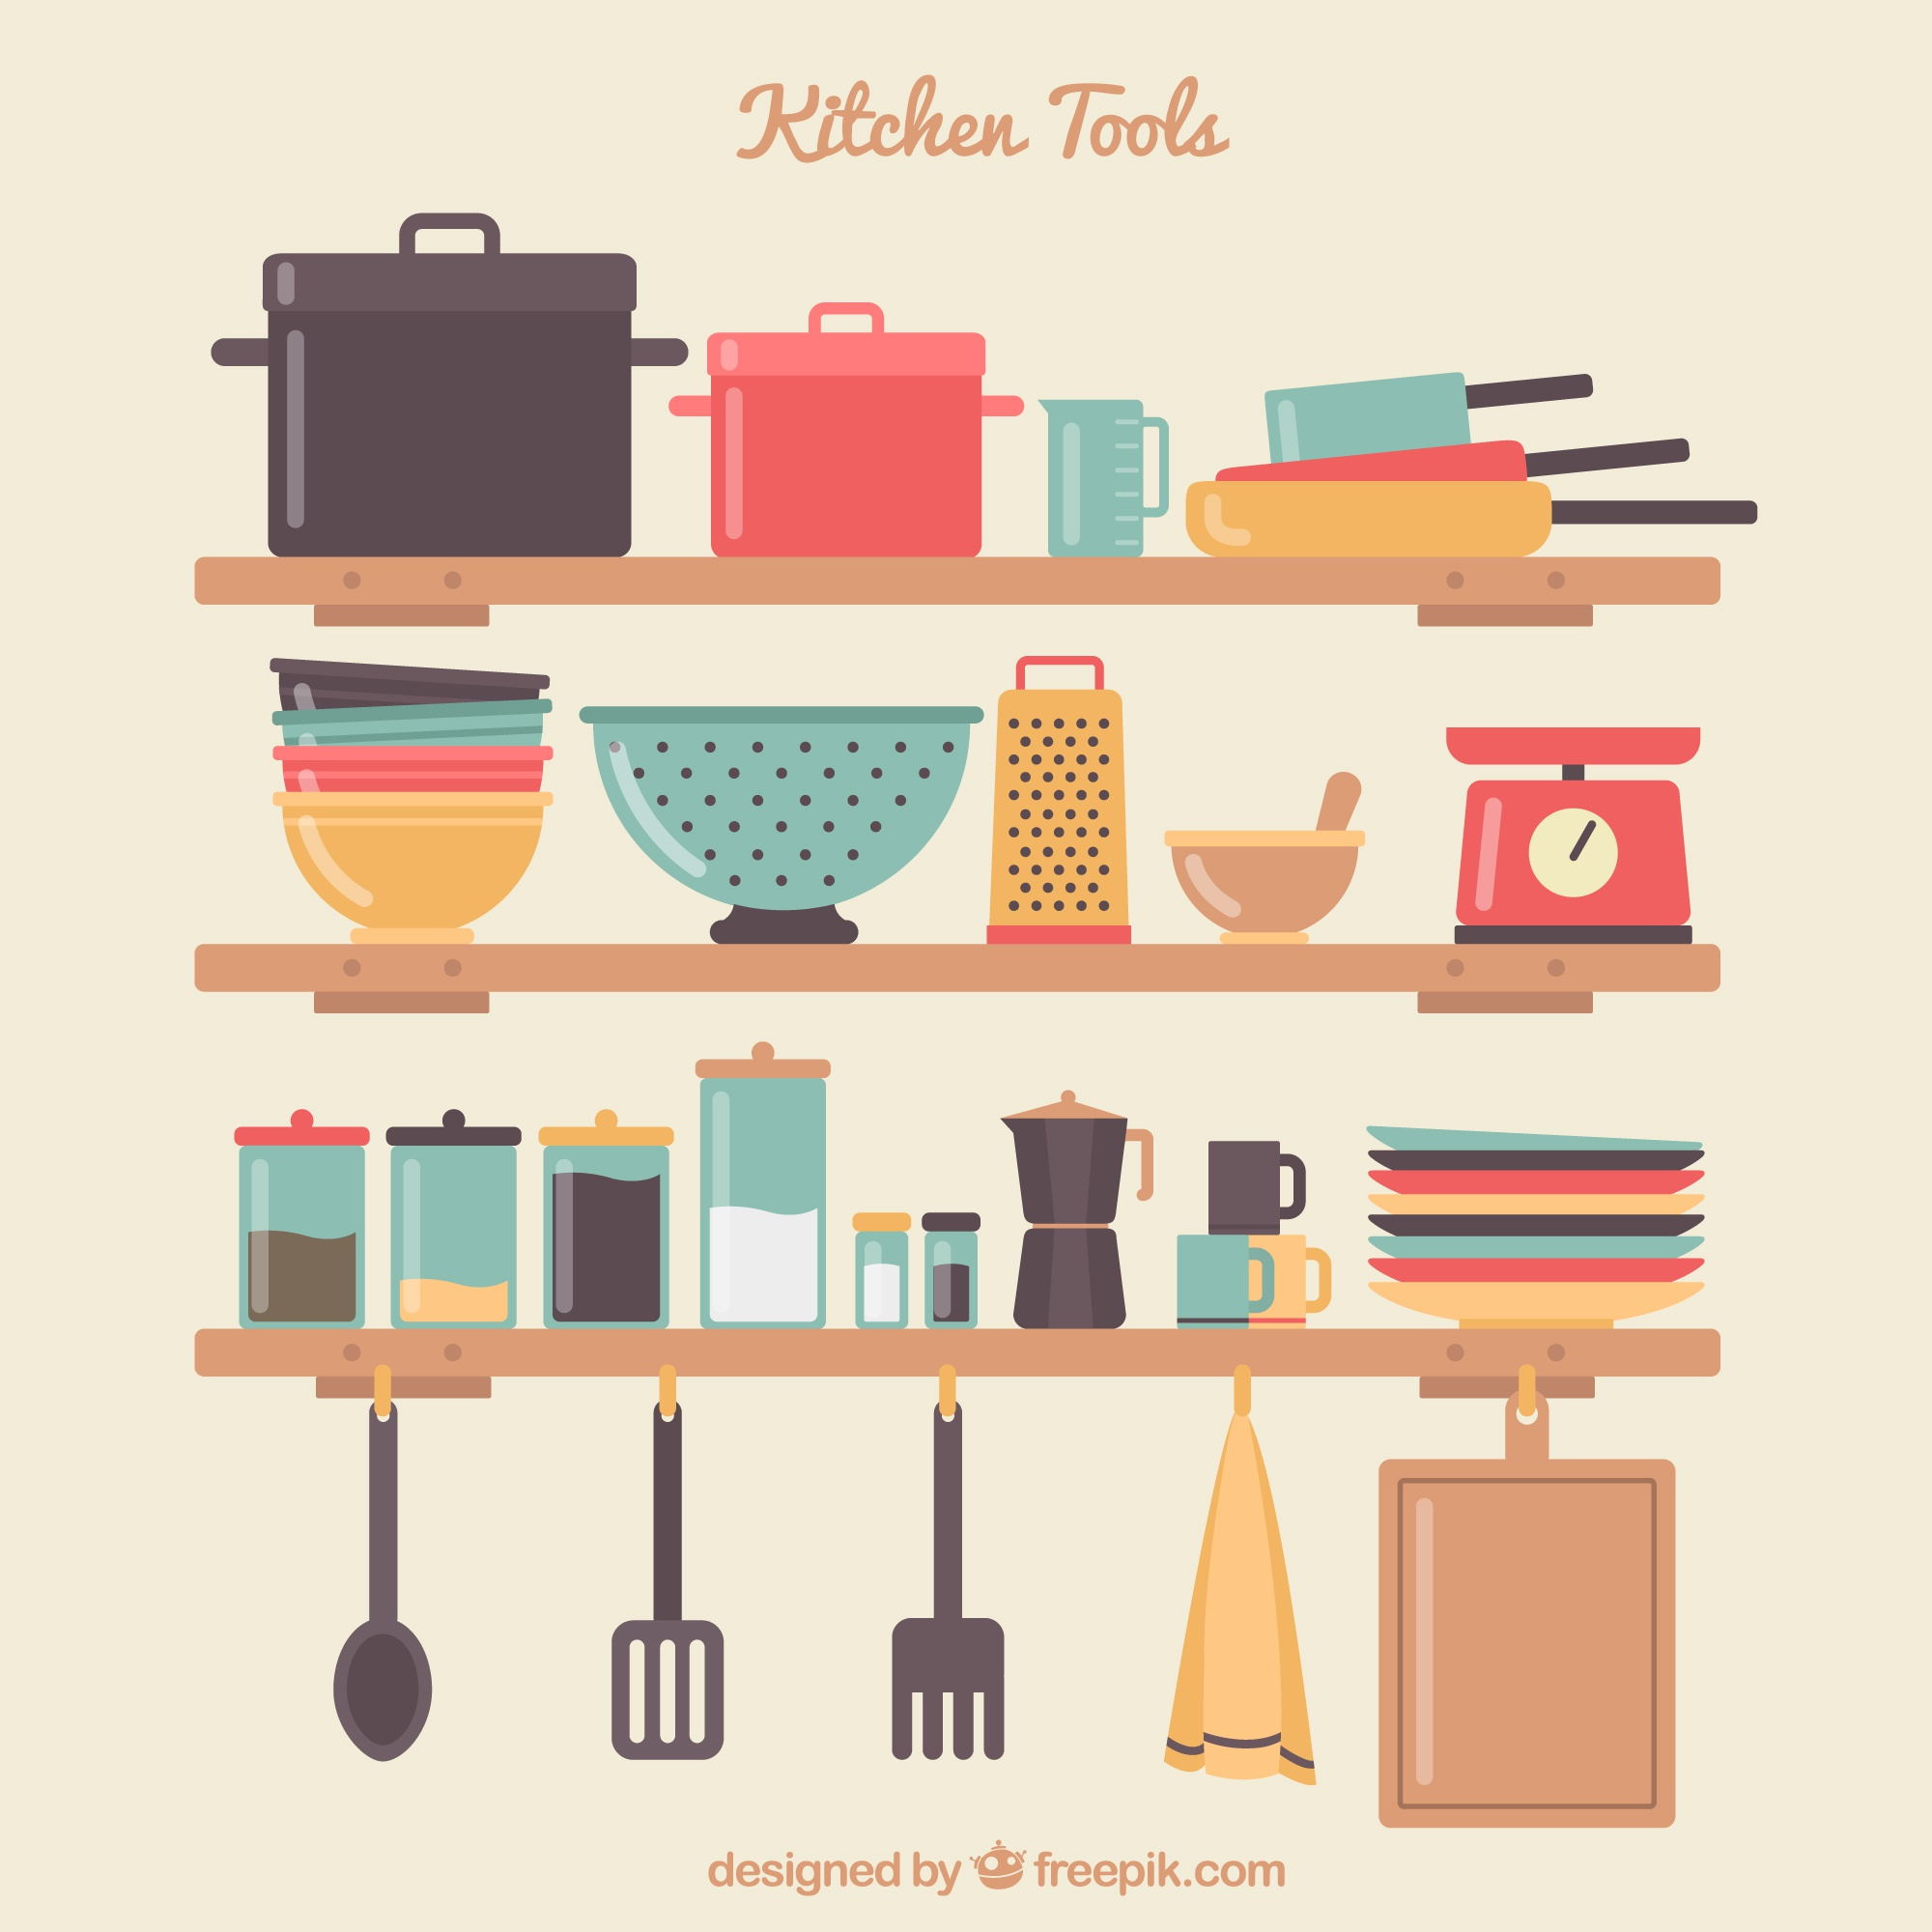 Kitchen tools on shelves